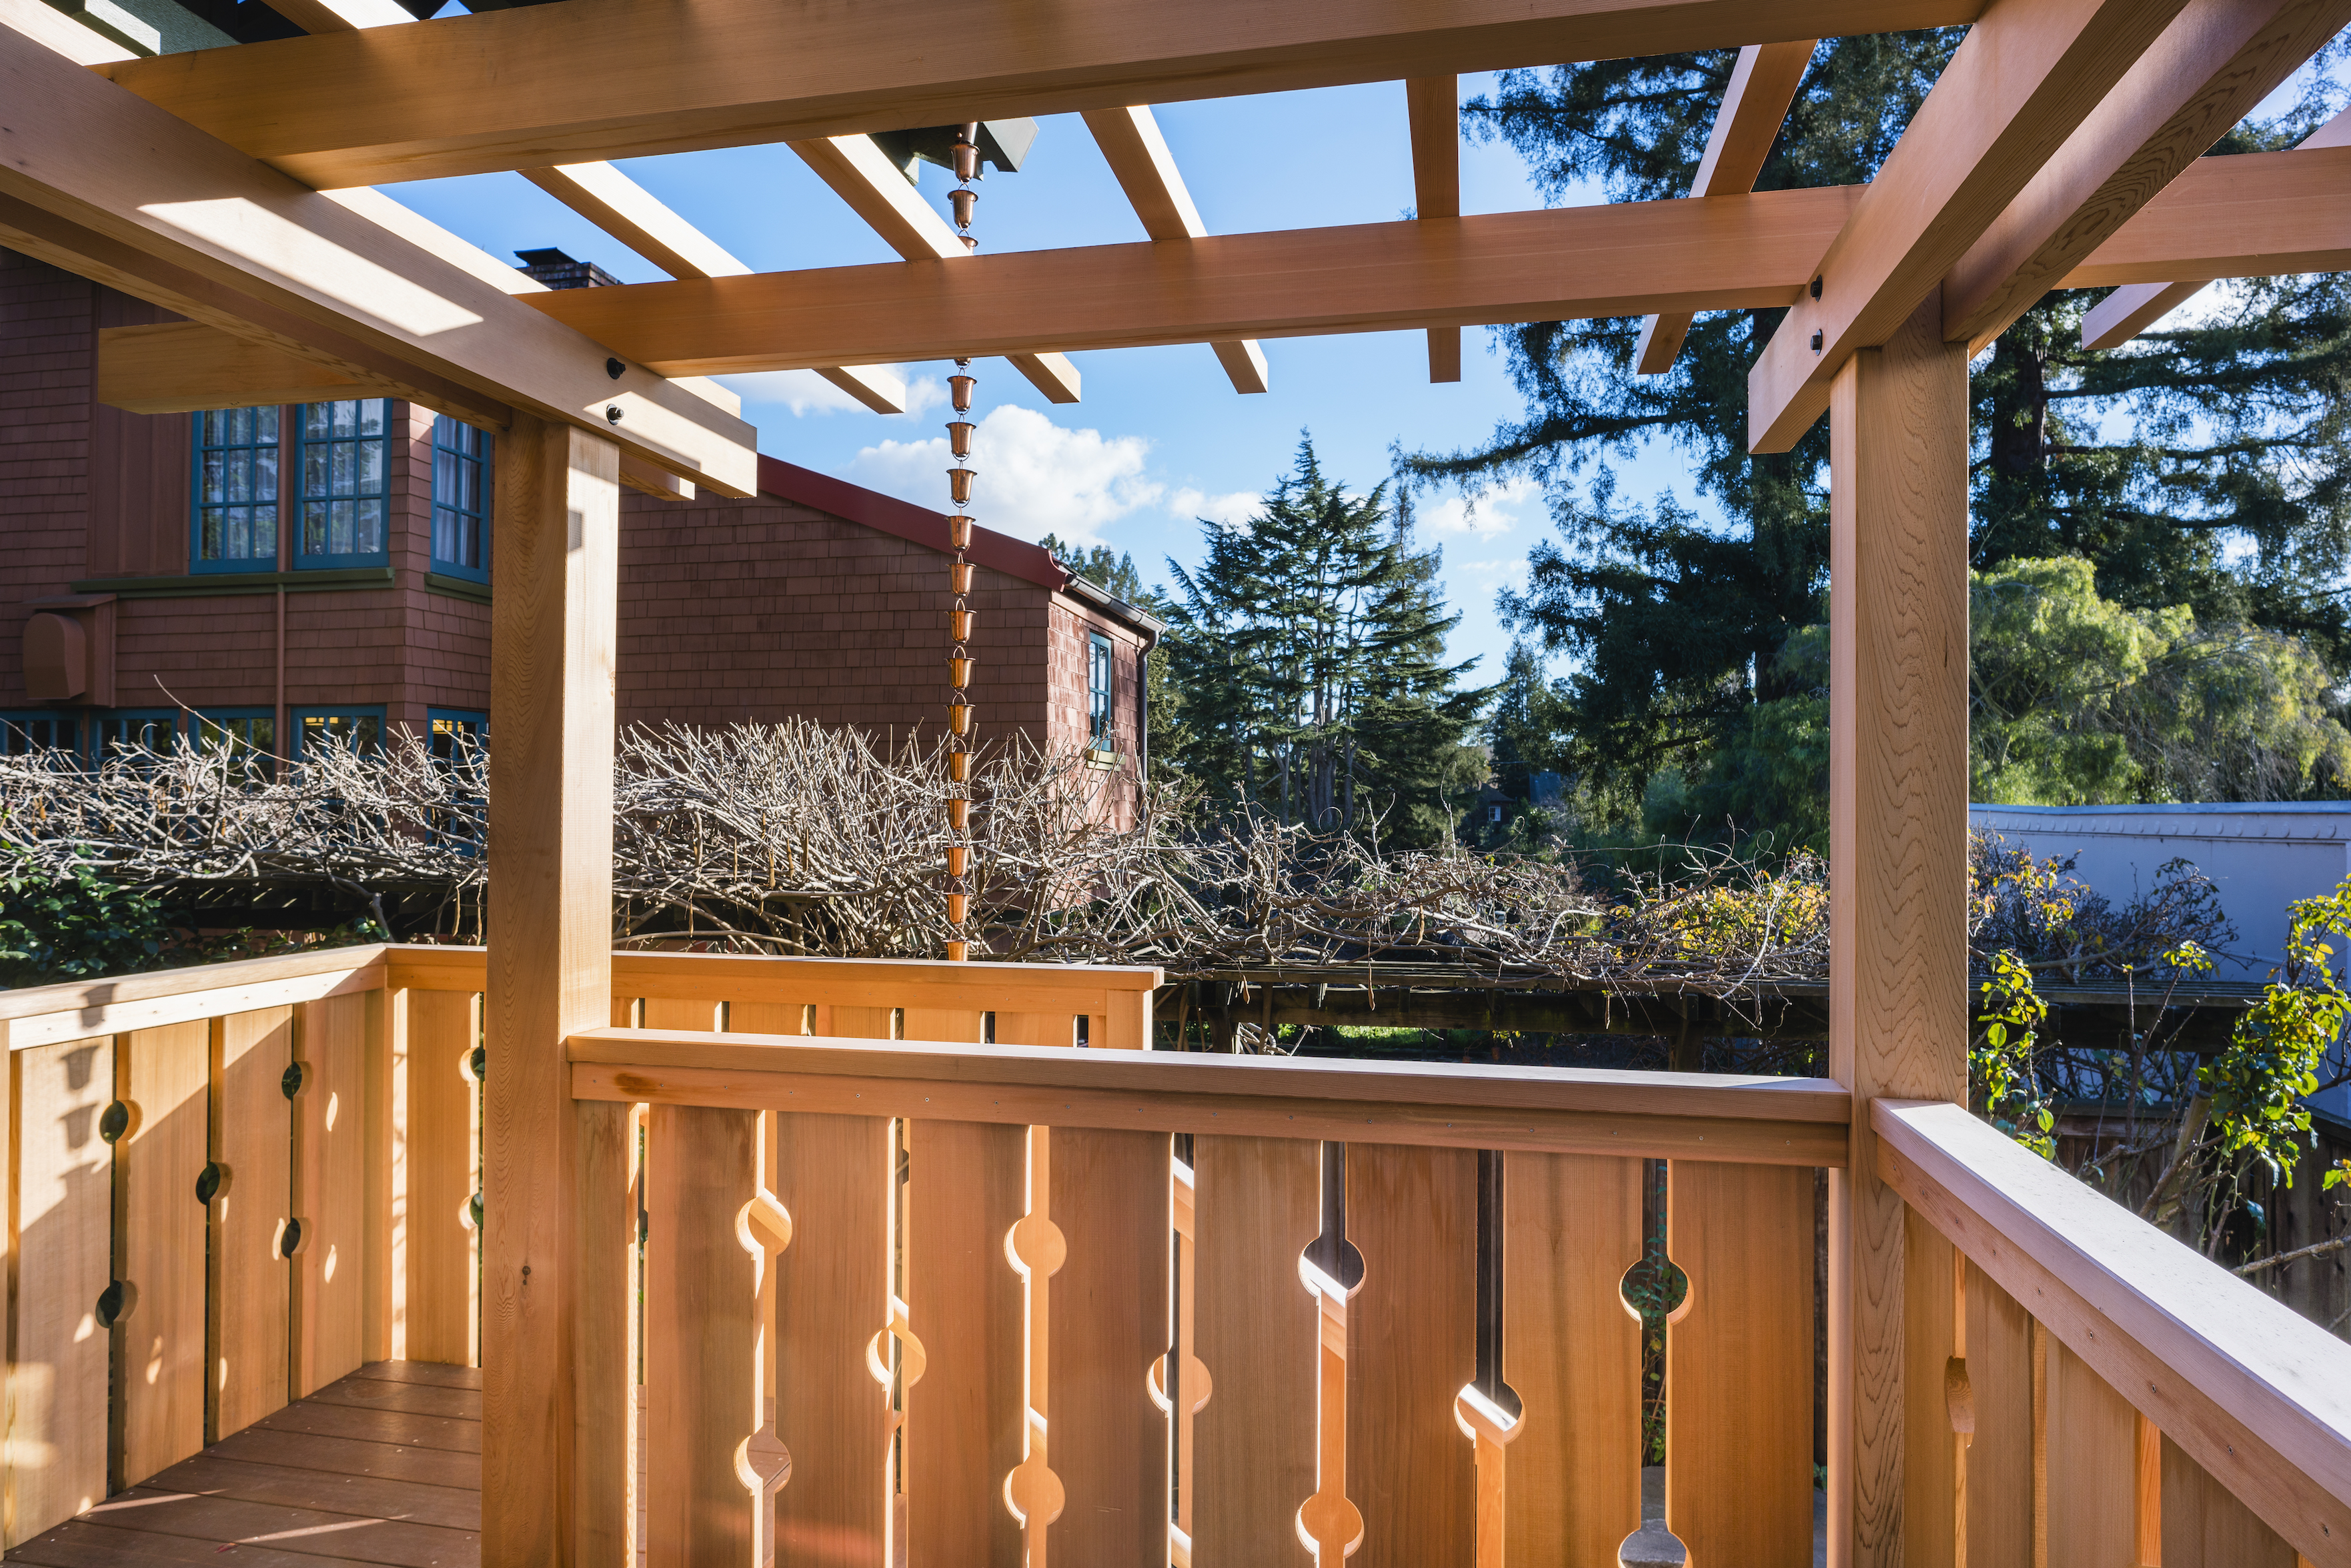 Deck with pergola and rain chain.